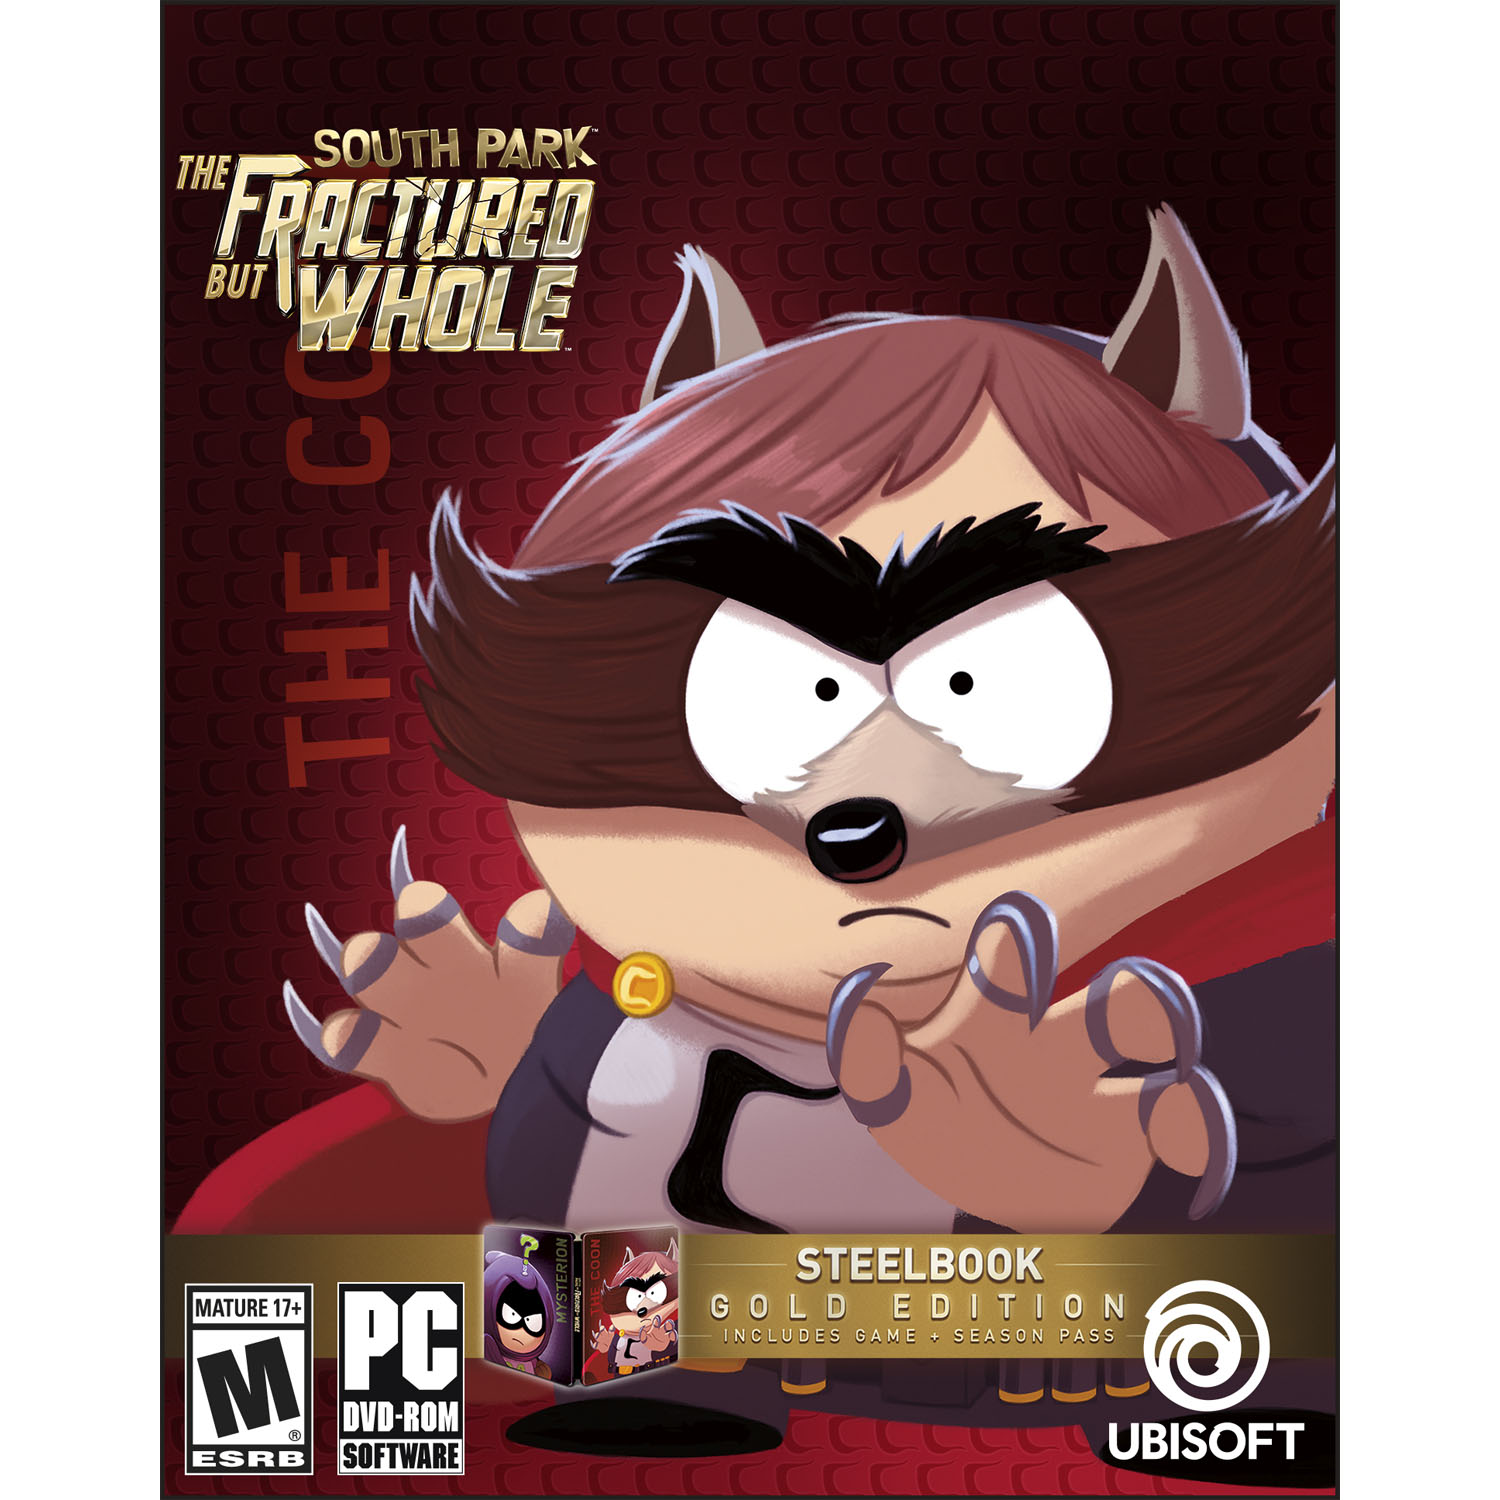 South Park: The Fractured But Whole Gold Edition, Ubisoft, PC, 887256022709